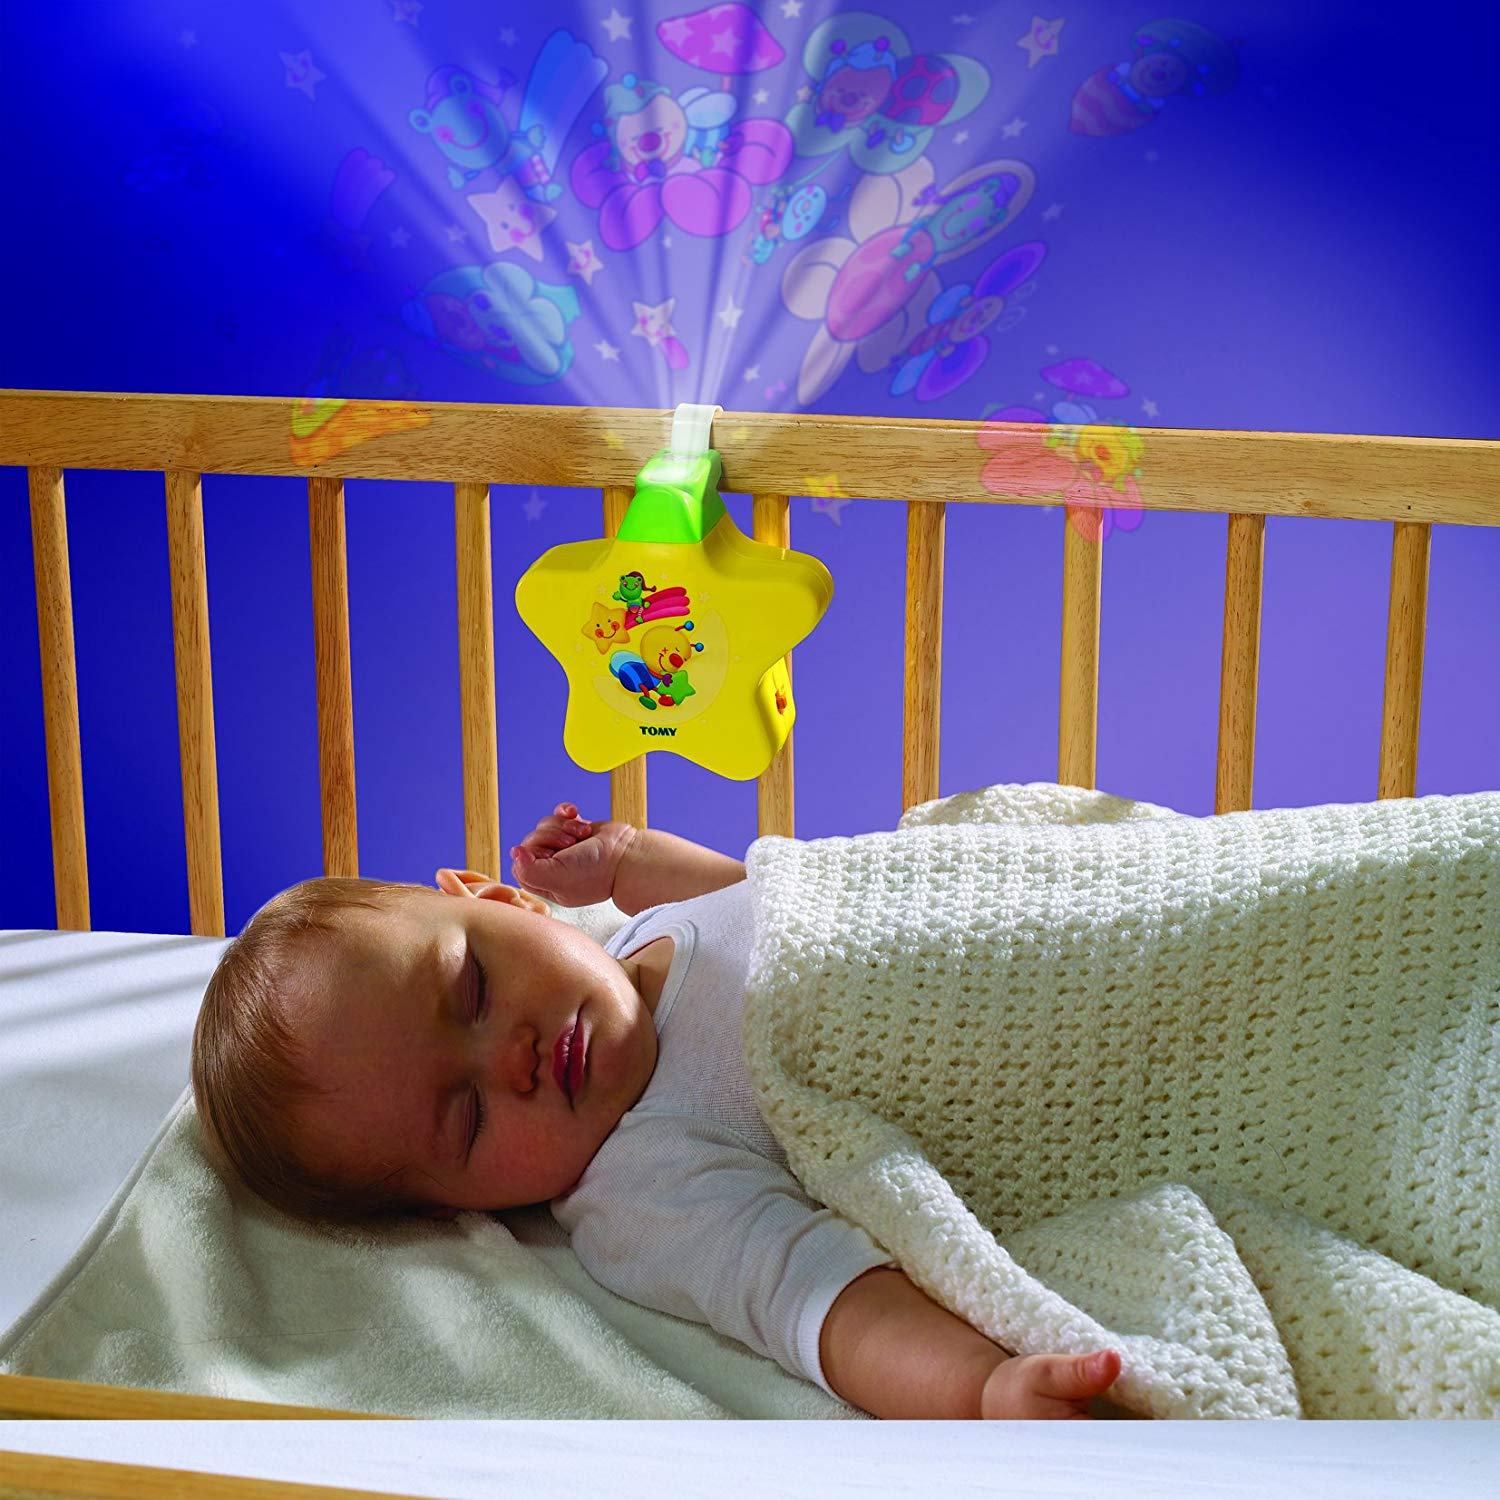 Baby night light projector with music Tomy First Years Starlight Dream Show Yellow - lights and sounds night light MLJSUOR